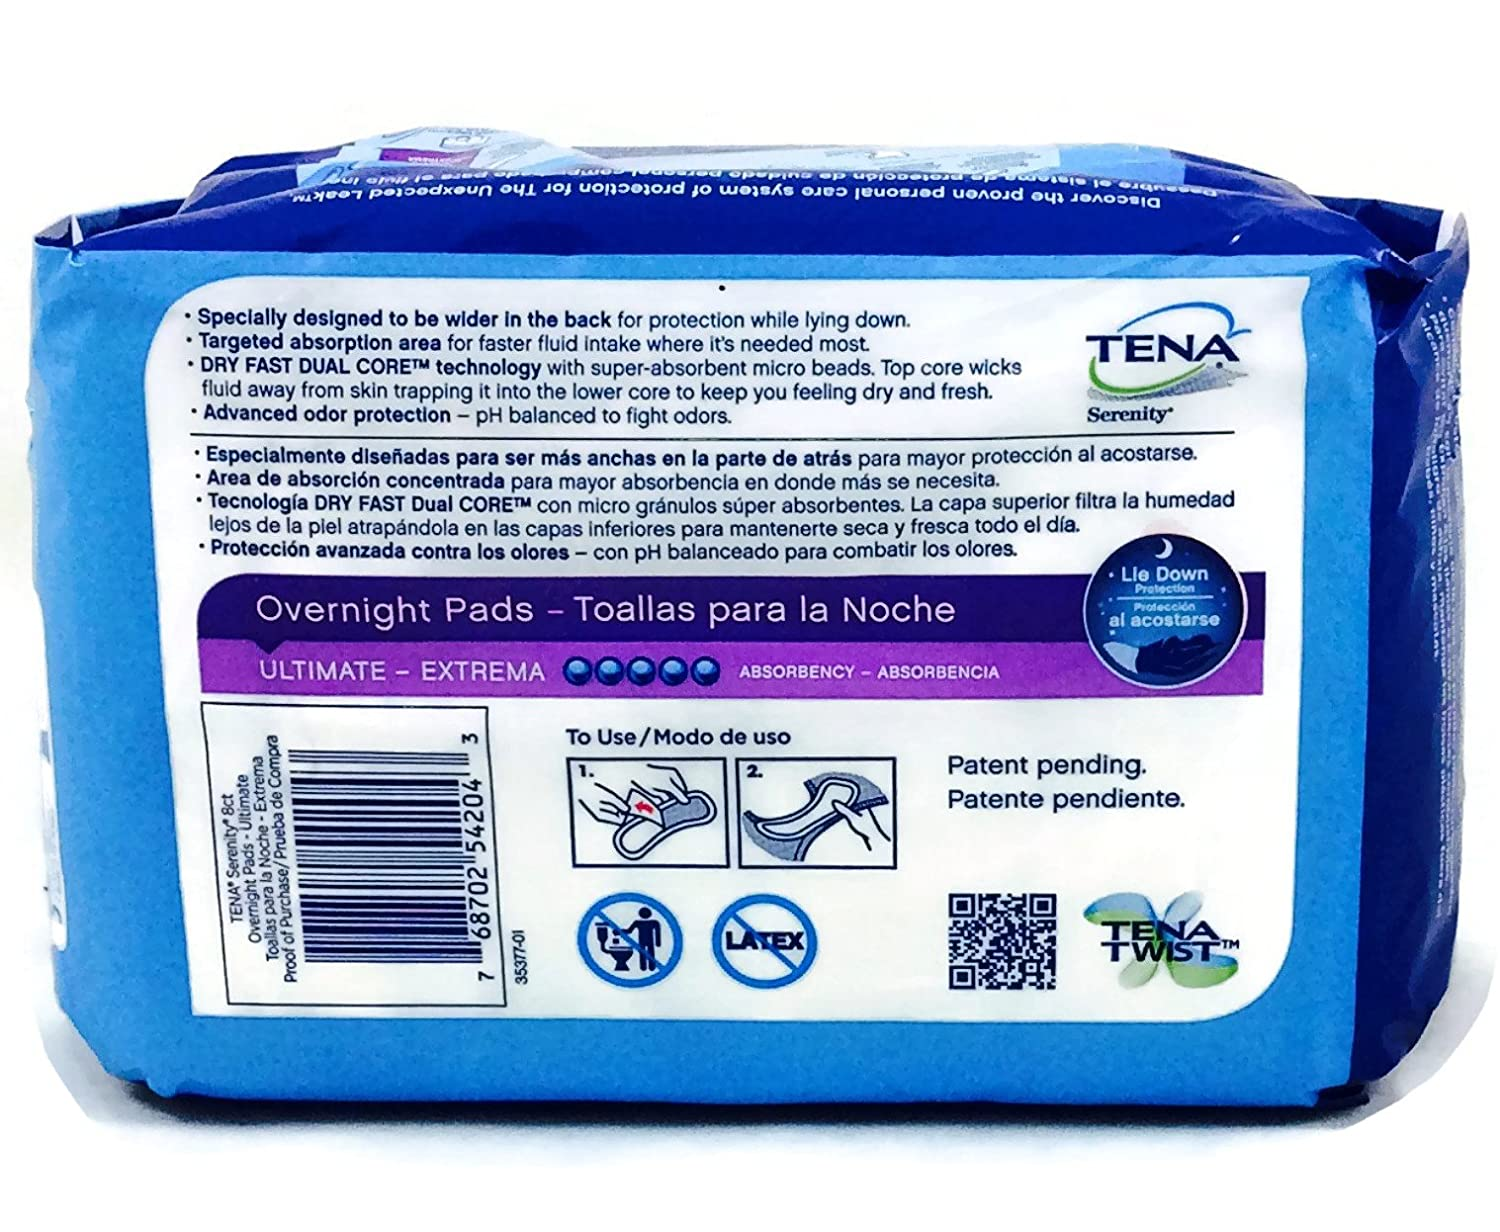 Amazon.com: Tena Serenity 8 Ct Overnight Pads Ultimate (Pack of 3): Beauty